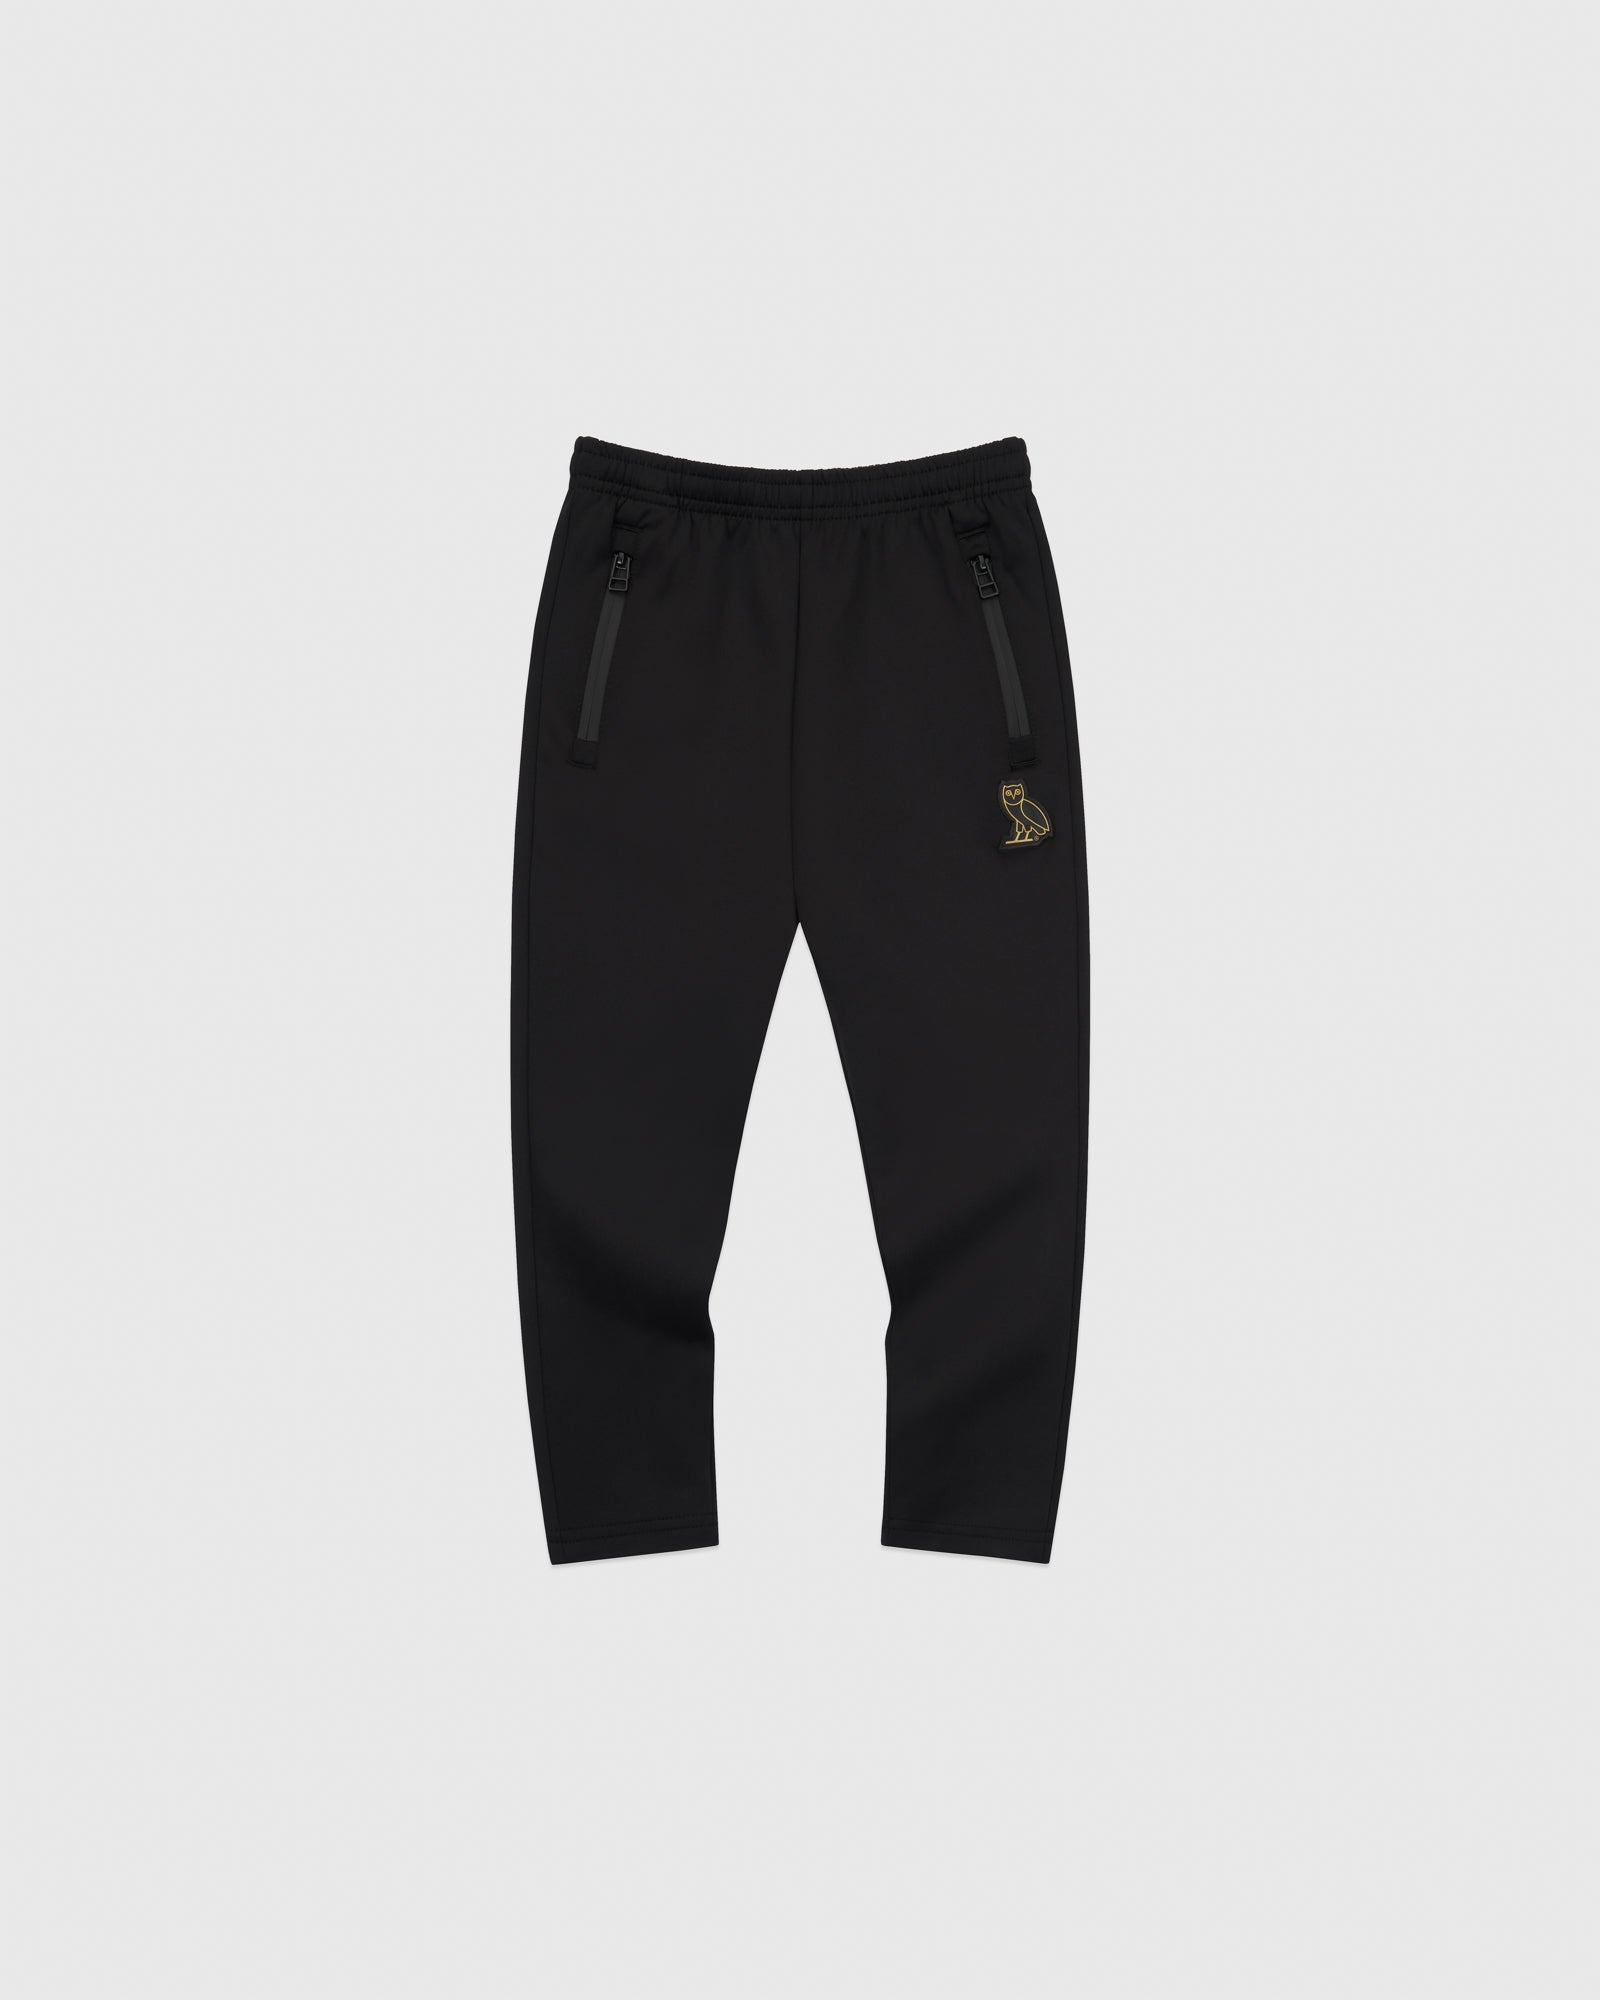 OVO KIDS INTERLOCK PANT - BLACK